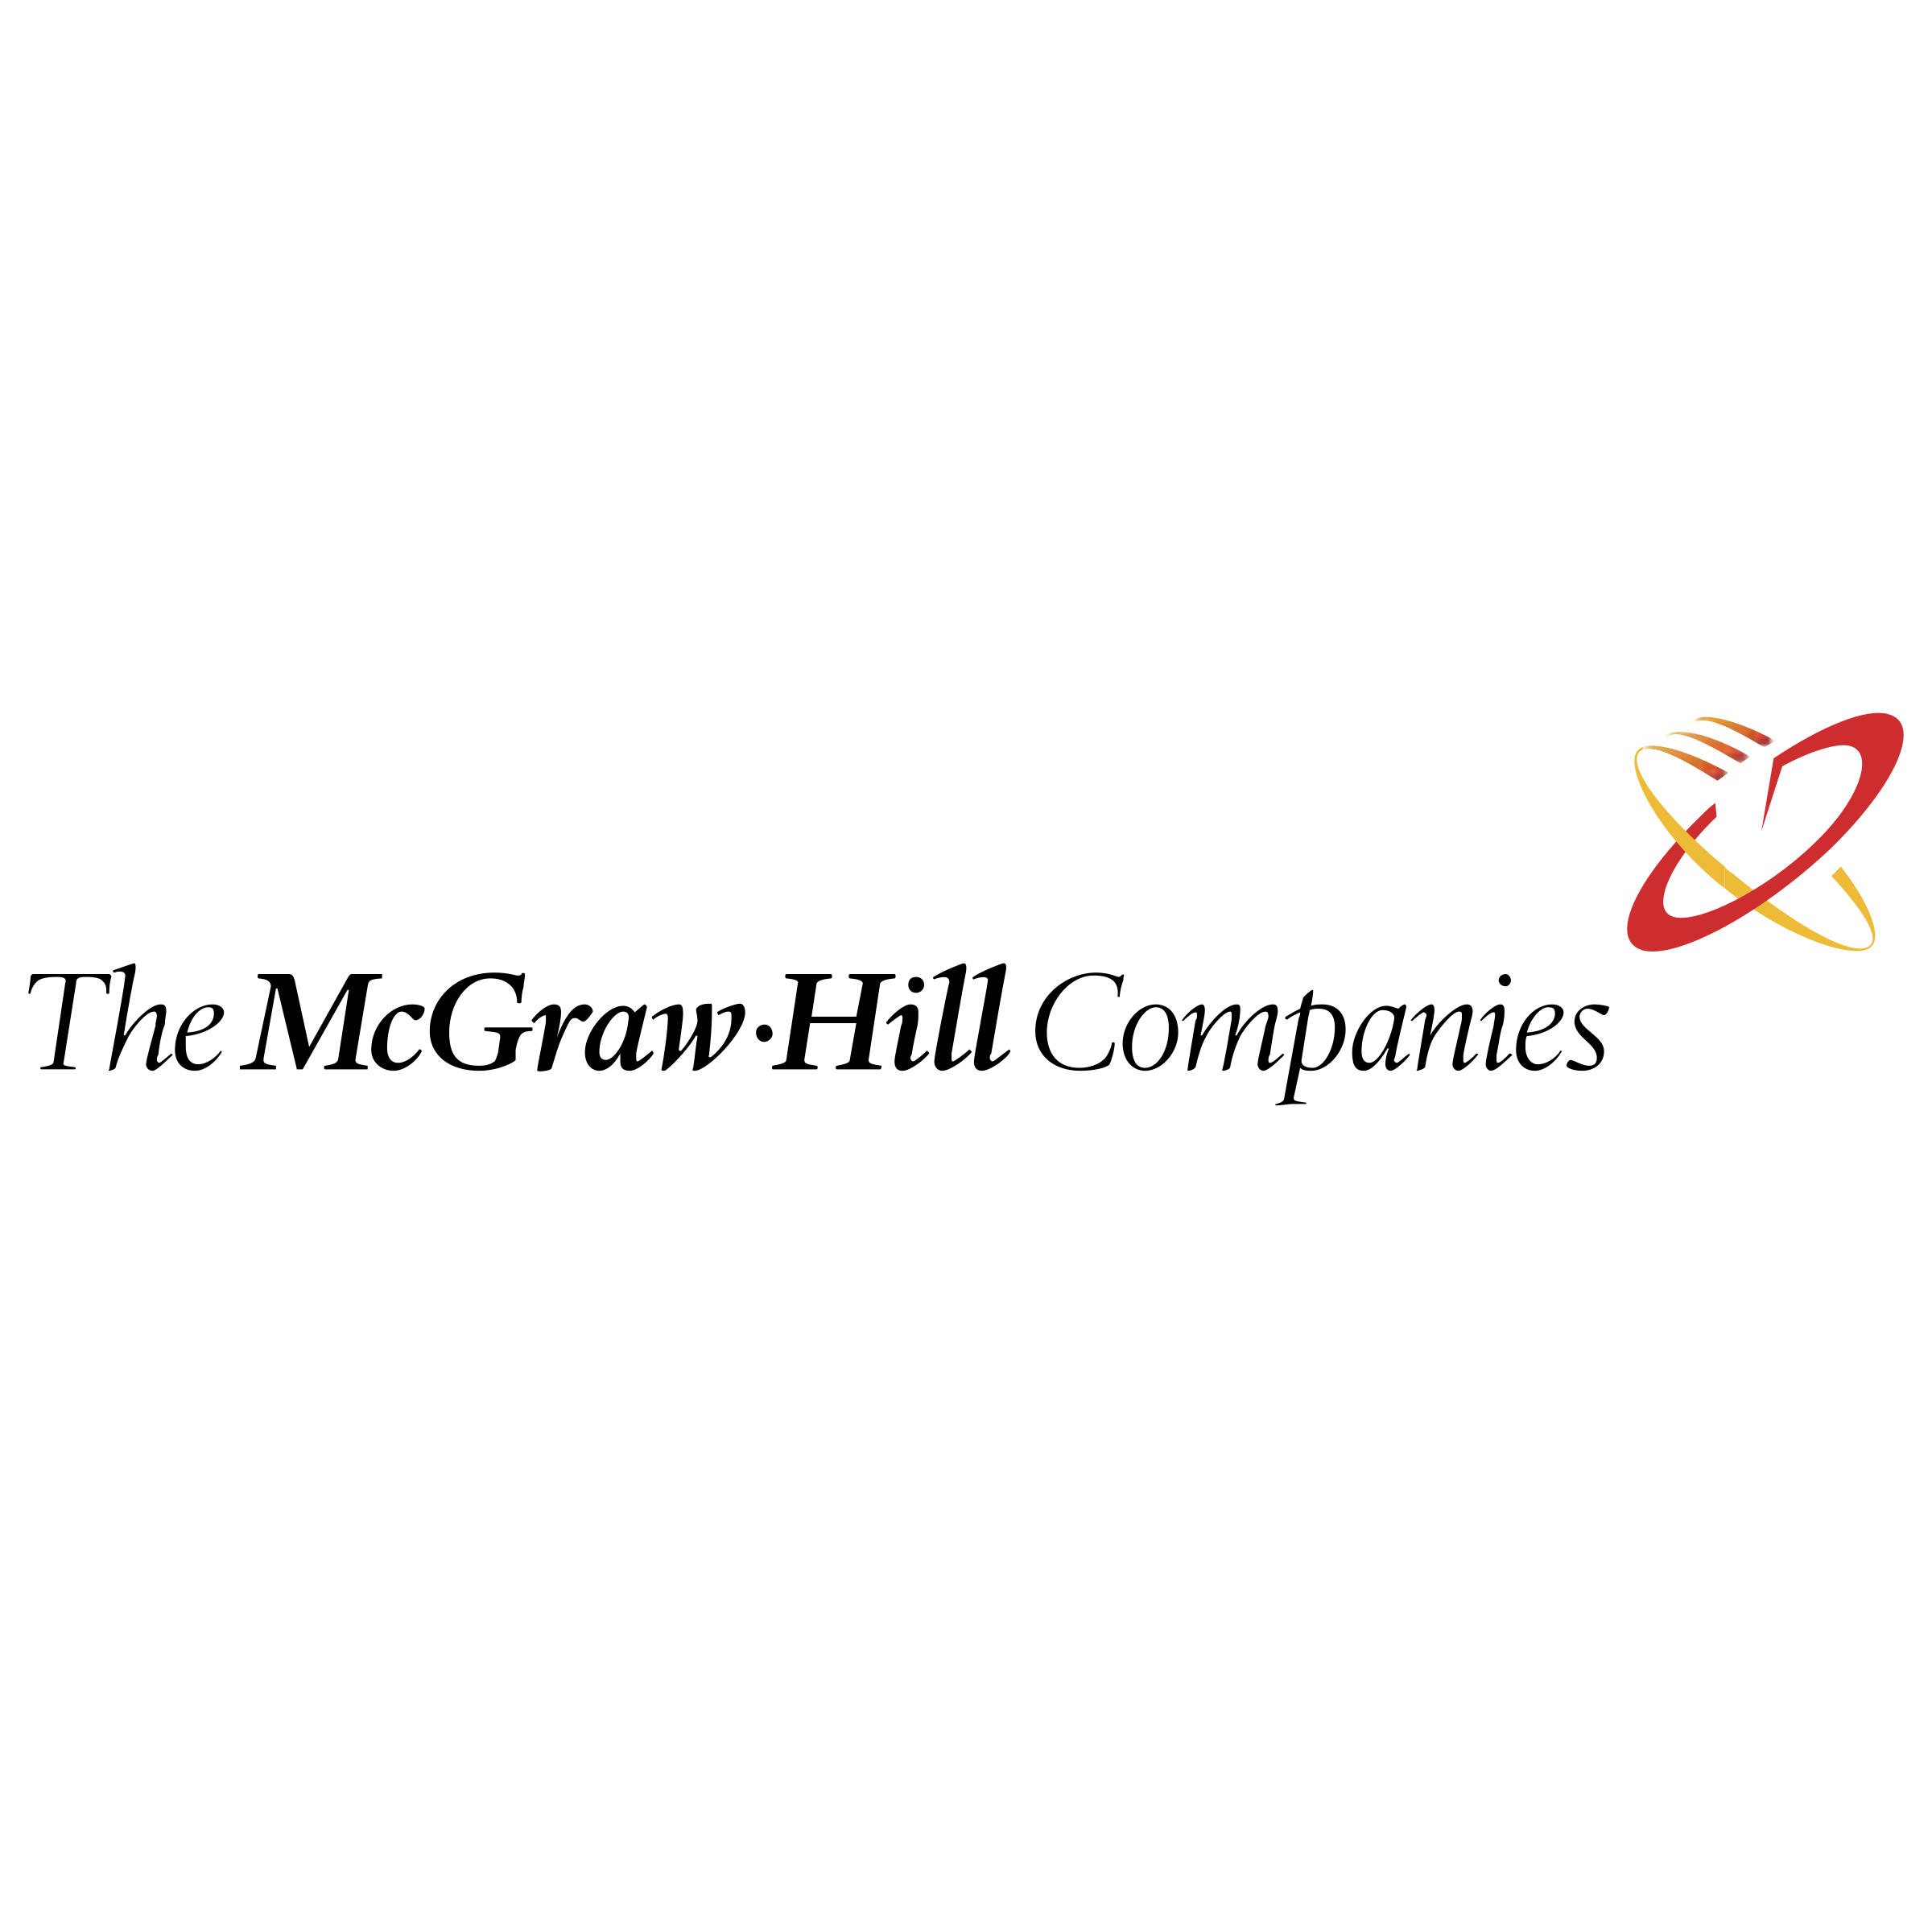 mcgraw-hill-logo-png-transparent.png